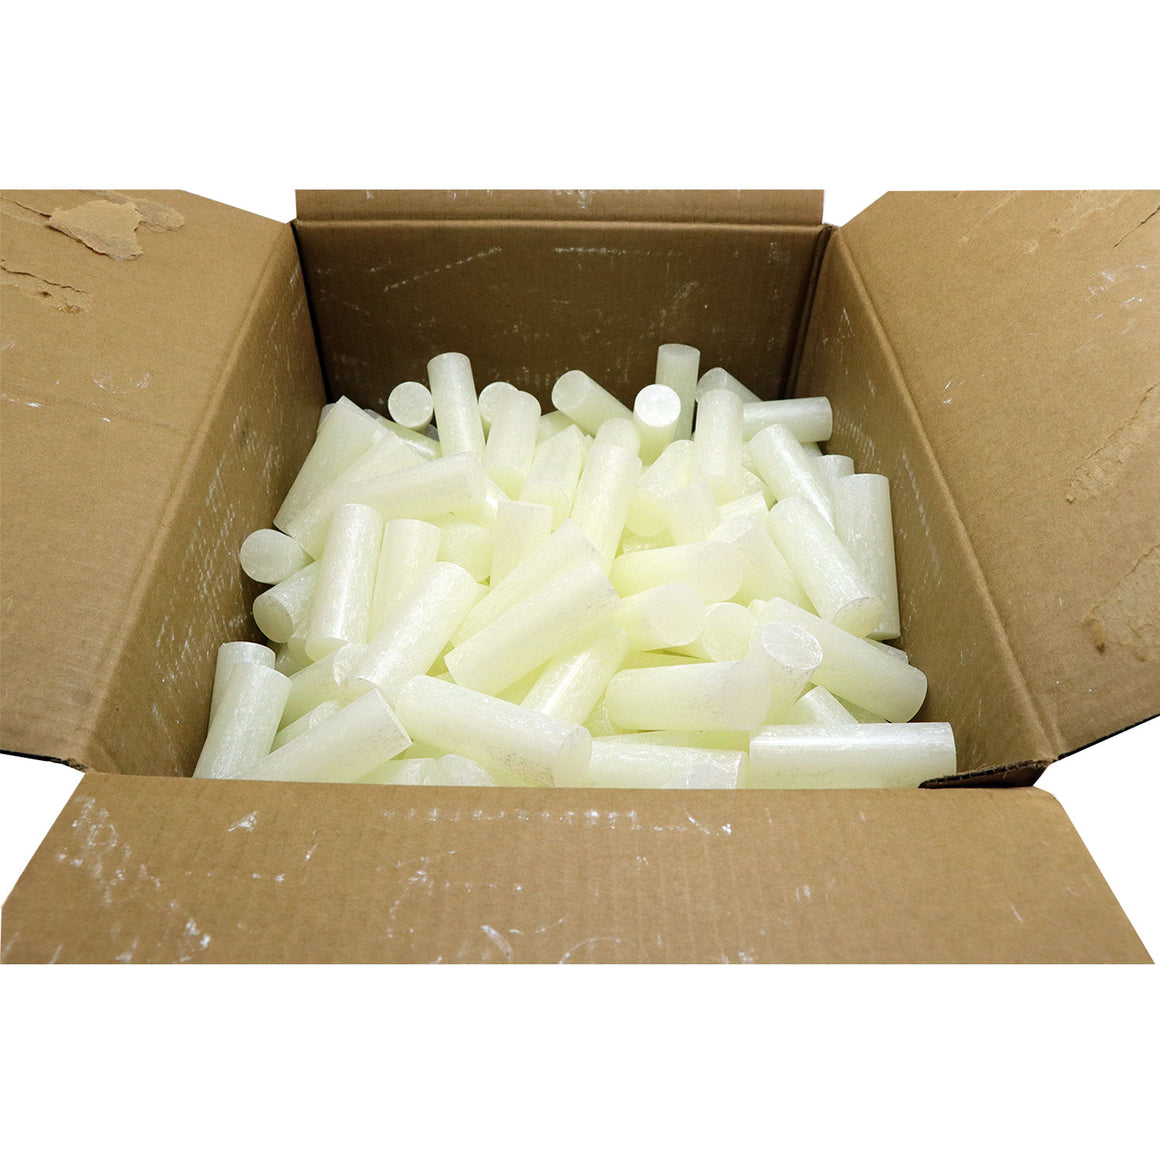 "C-725 All Temperature All Purpose Hot Melt Glue Sticks - 1"" x 3"" - 35 lbs -Clear"